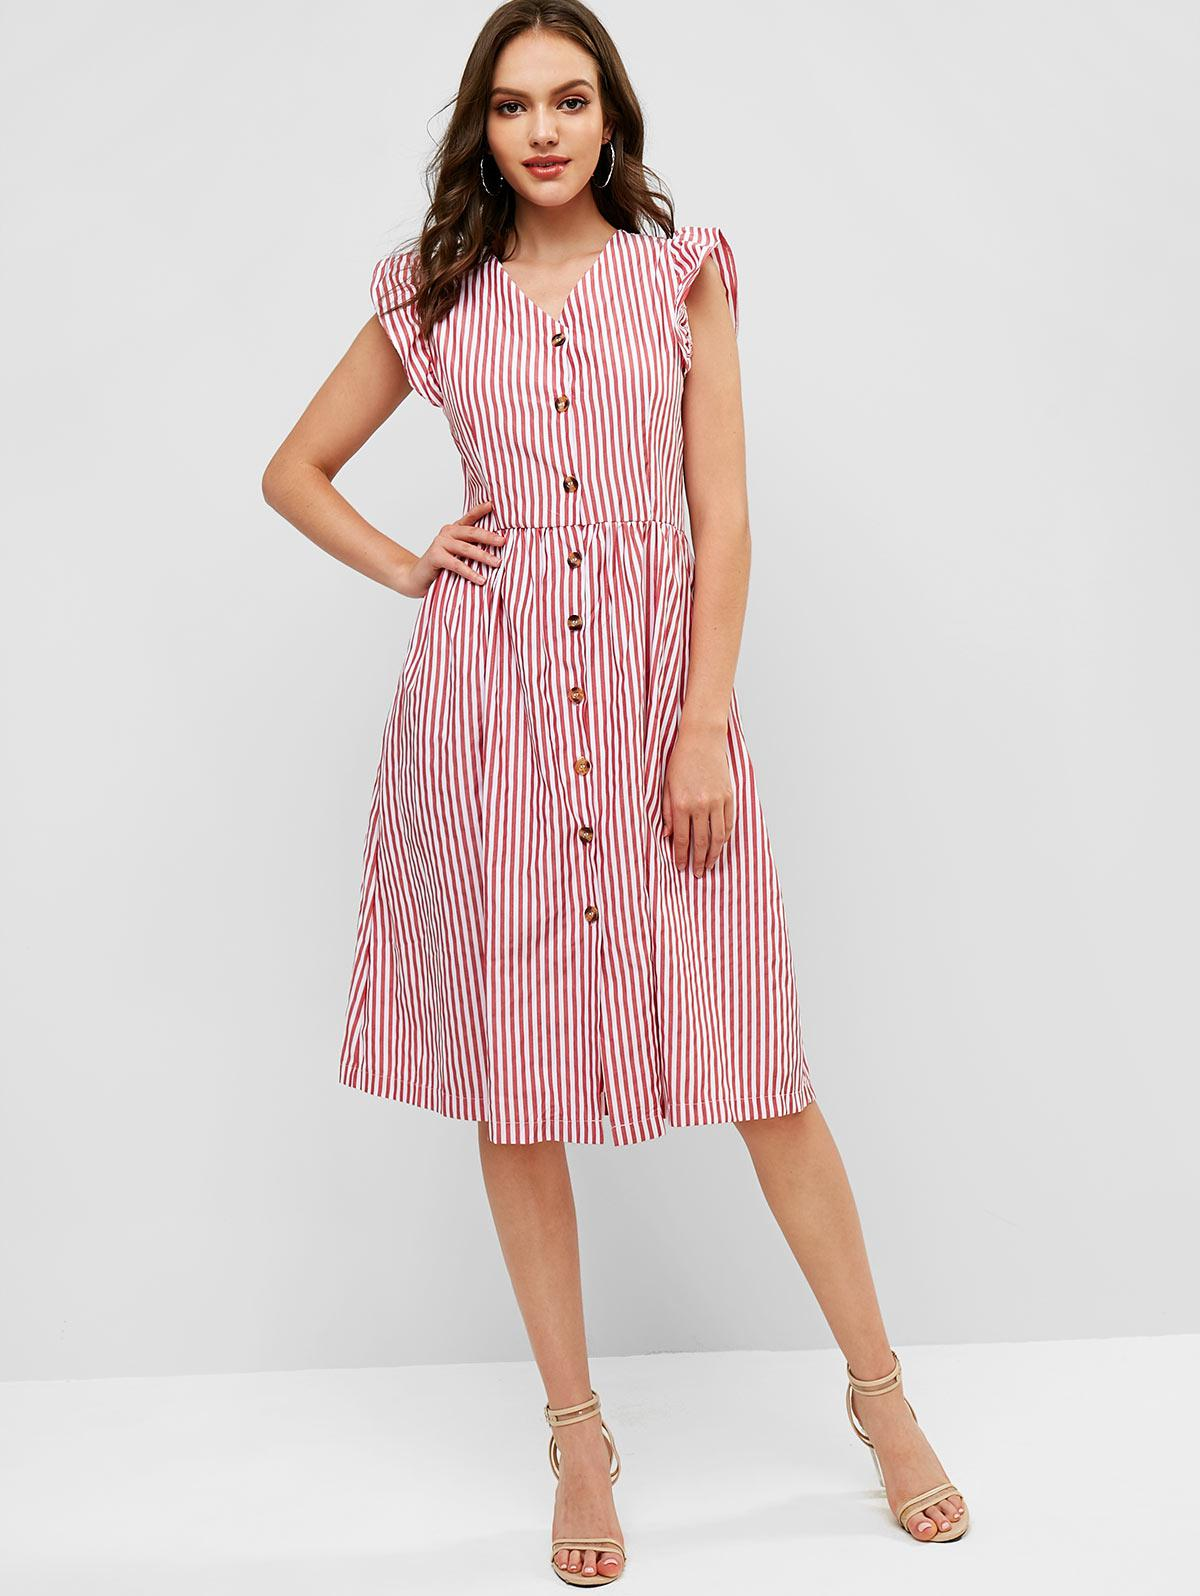 Ruffles Stripes Button Up Casual Dress, Cherry red